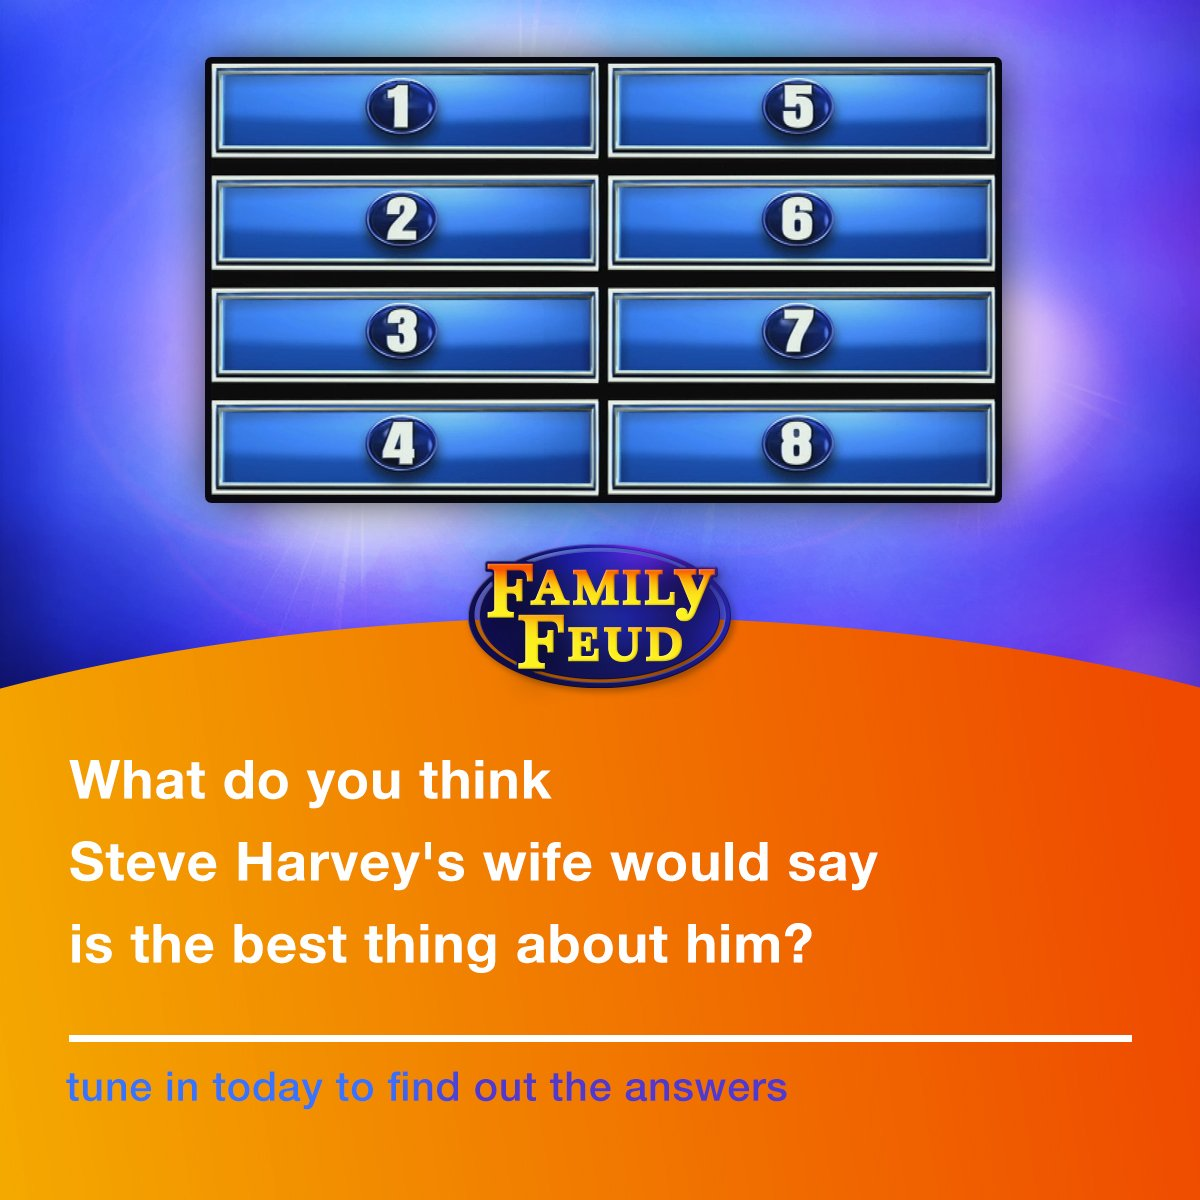 powerpoint game templates family feud image collections, Powerpoint templates